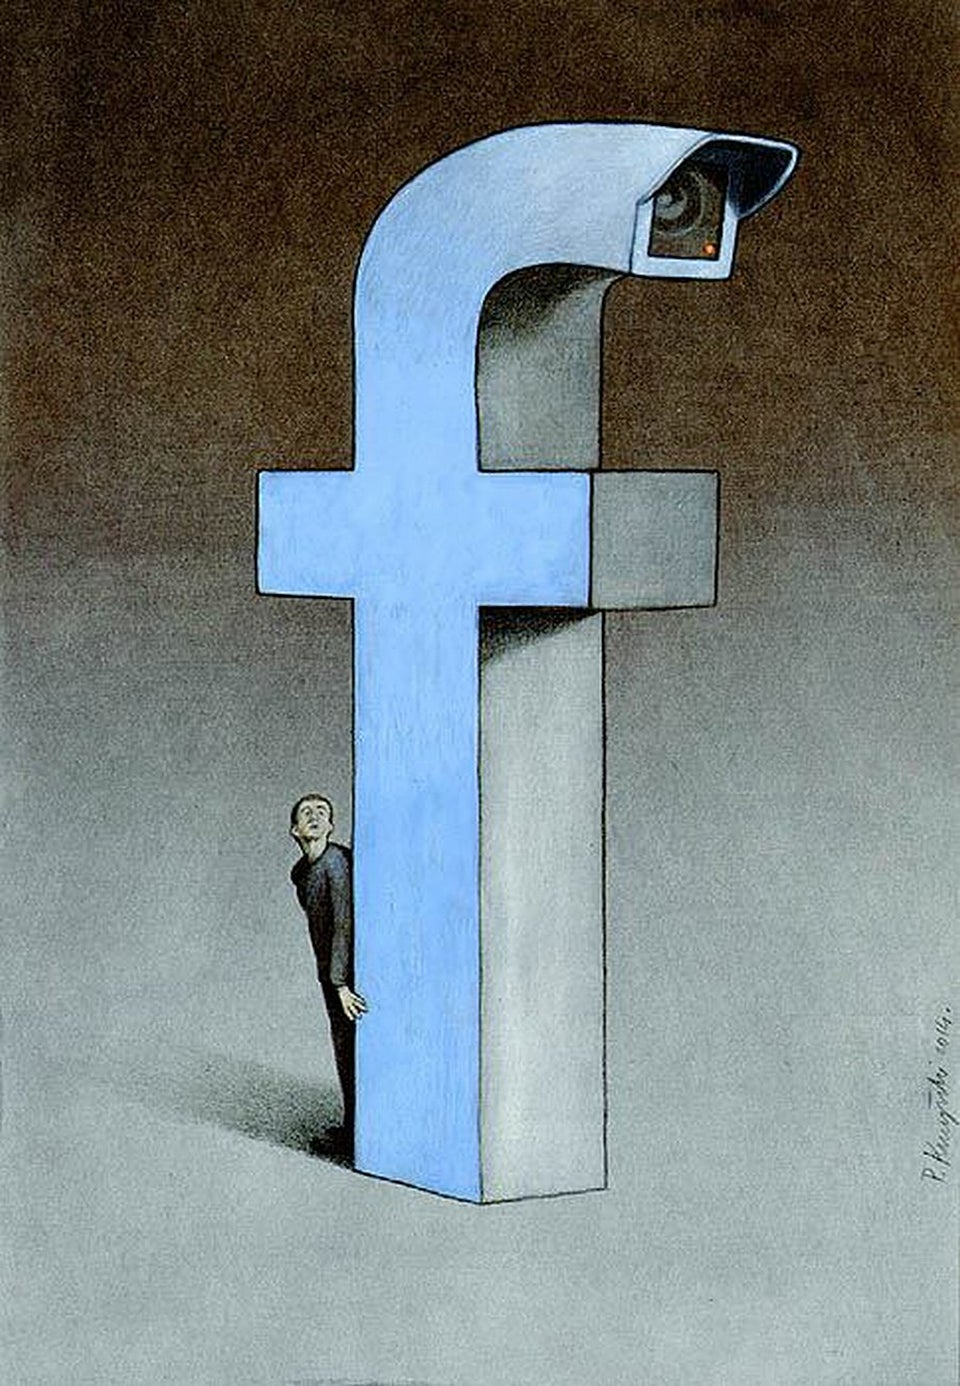 These illustrations perfectly make fun of our obsession with Facebook